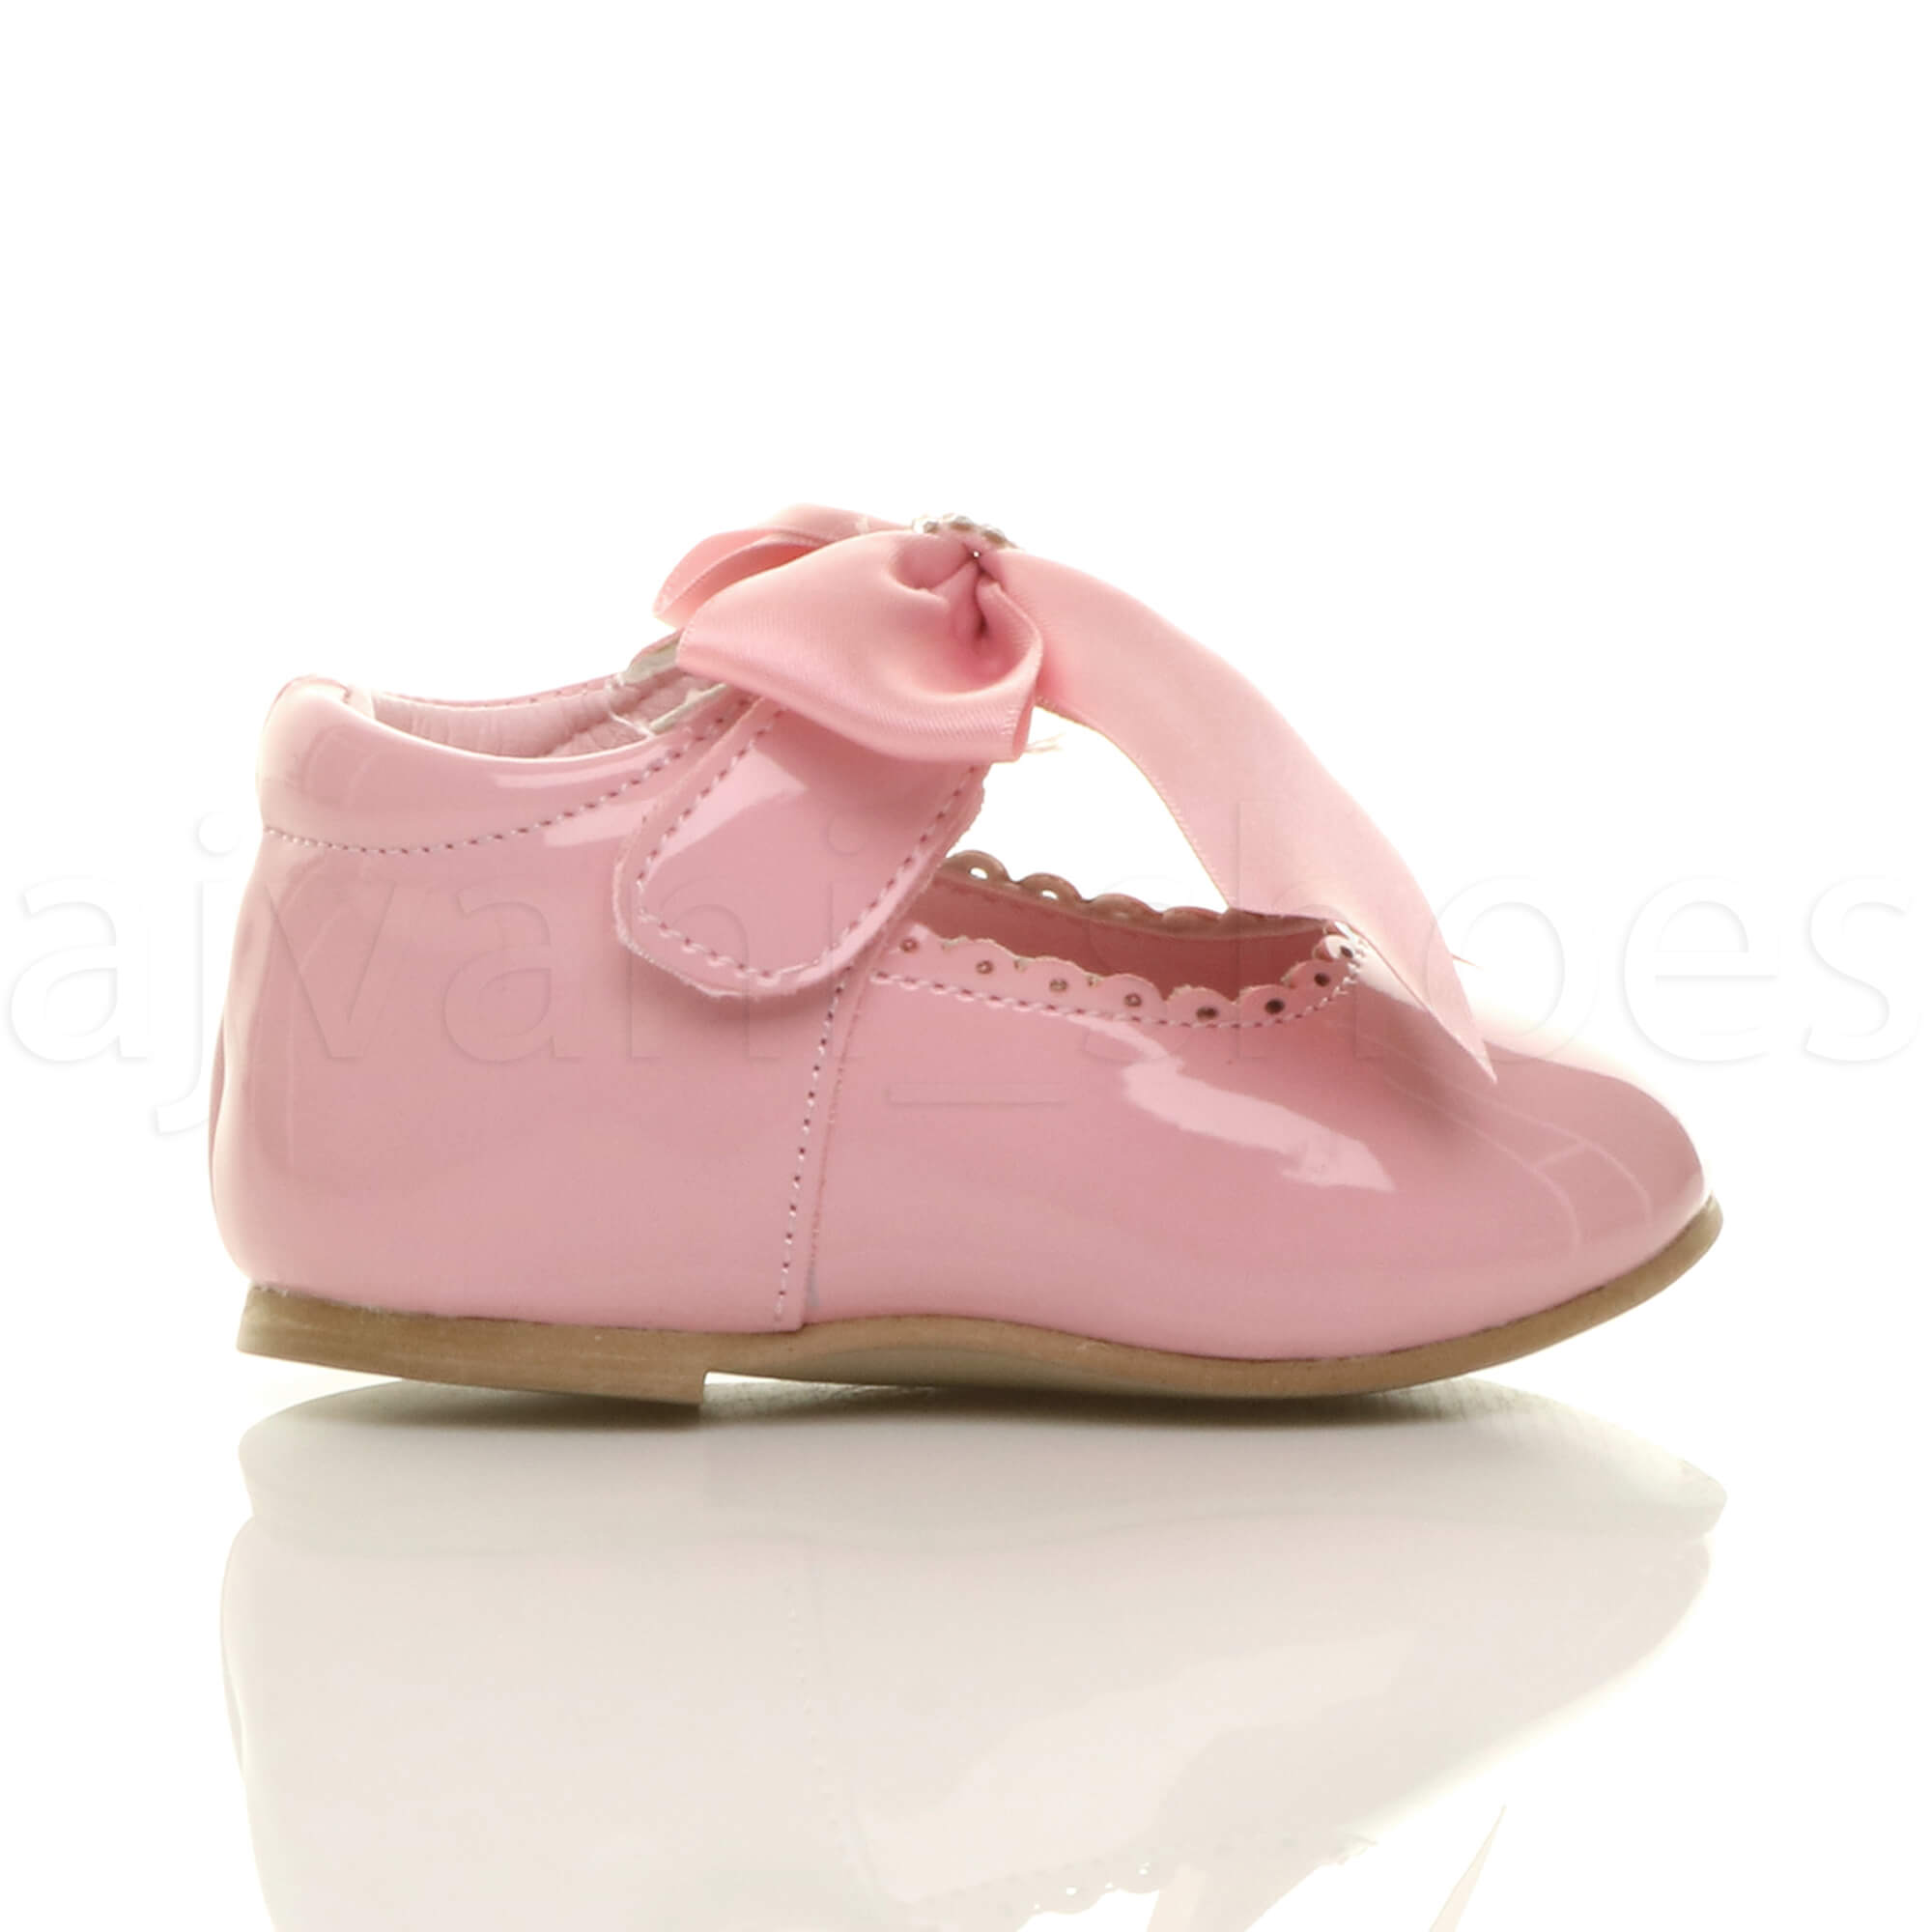 GIRLS-INFANTS-CHILDRENS-RIBBON-BOW-SCALLOPED-BRIDESMAID-PARTY-MARY-JANE-SHOES